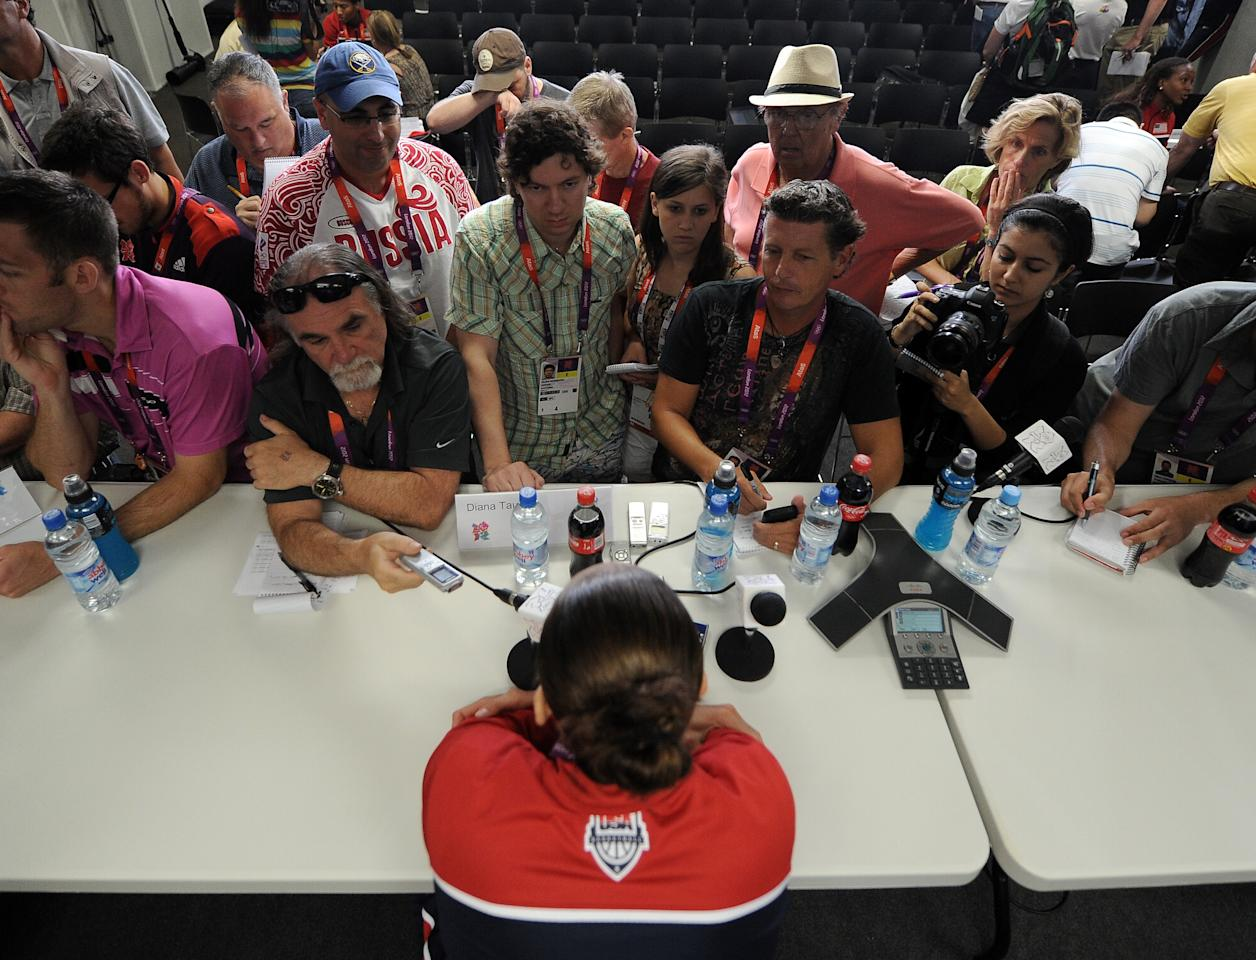 LONDON, ENGLAND - JULY 26:  Diana Taurasi speaks to the media during a United States Women's basketball press conference at the Tower Press Conference Room on July 26, 2012 in London, England.  (Photo by Harry How/Getty Images)